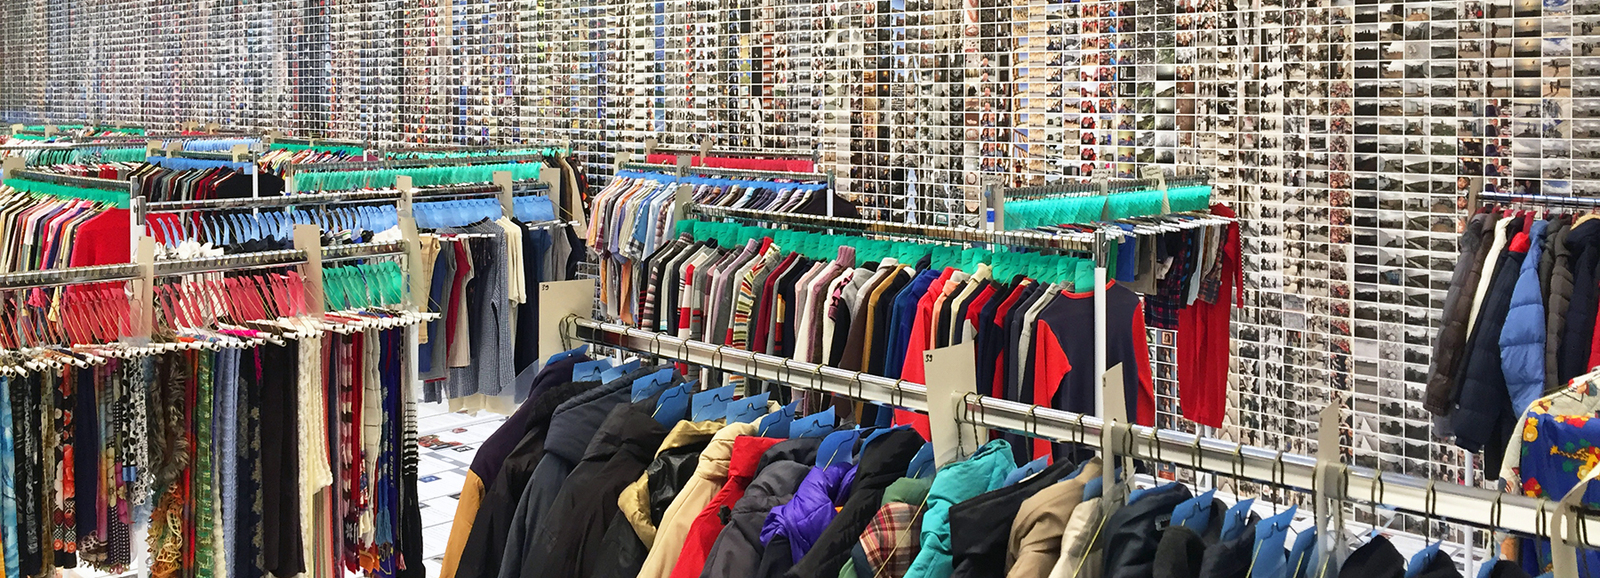 Storing Clothes for Refugees in Egypt